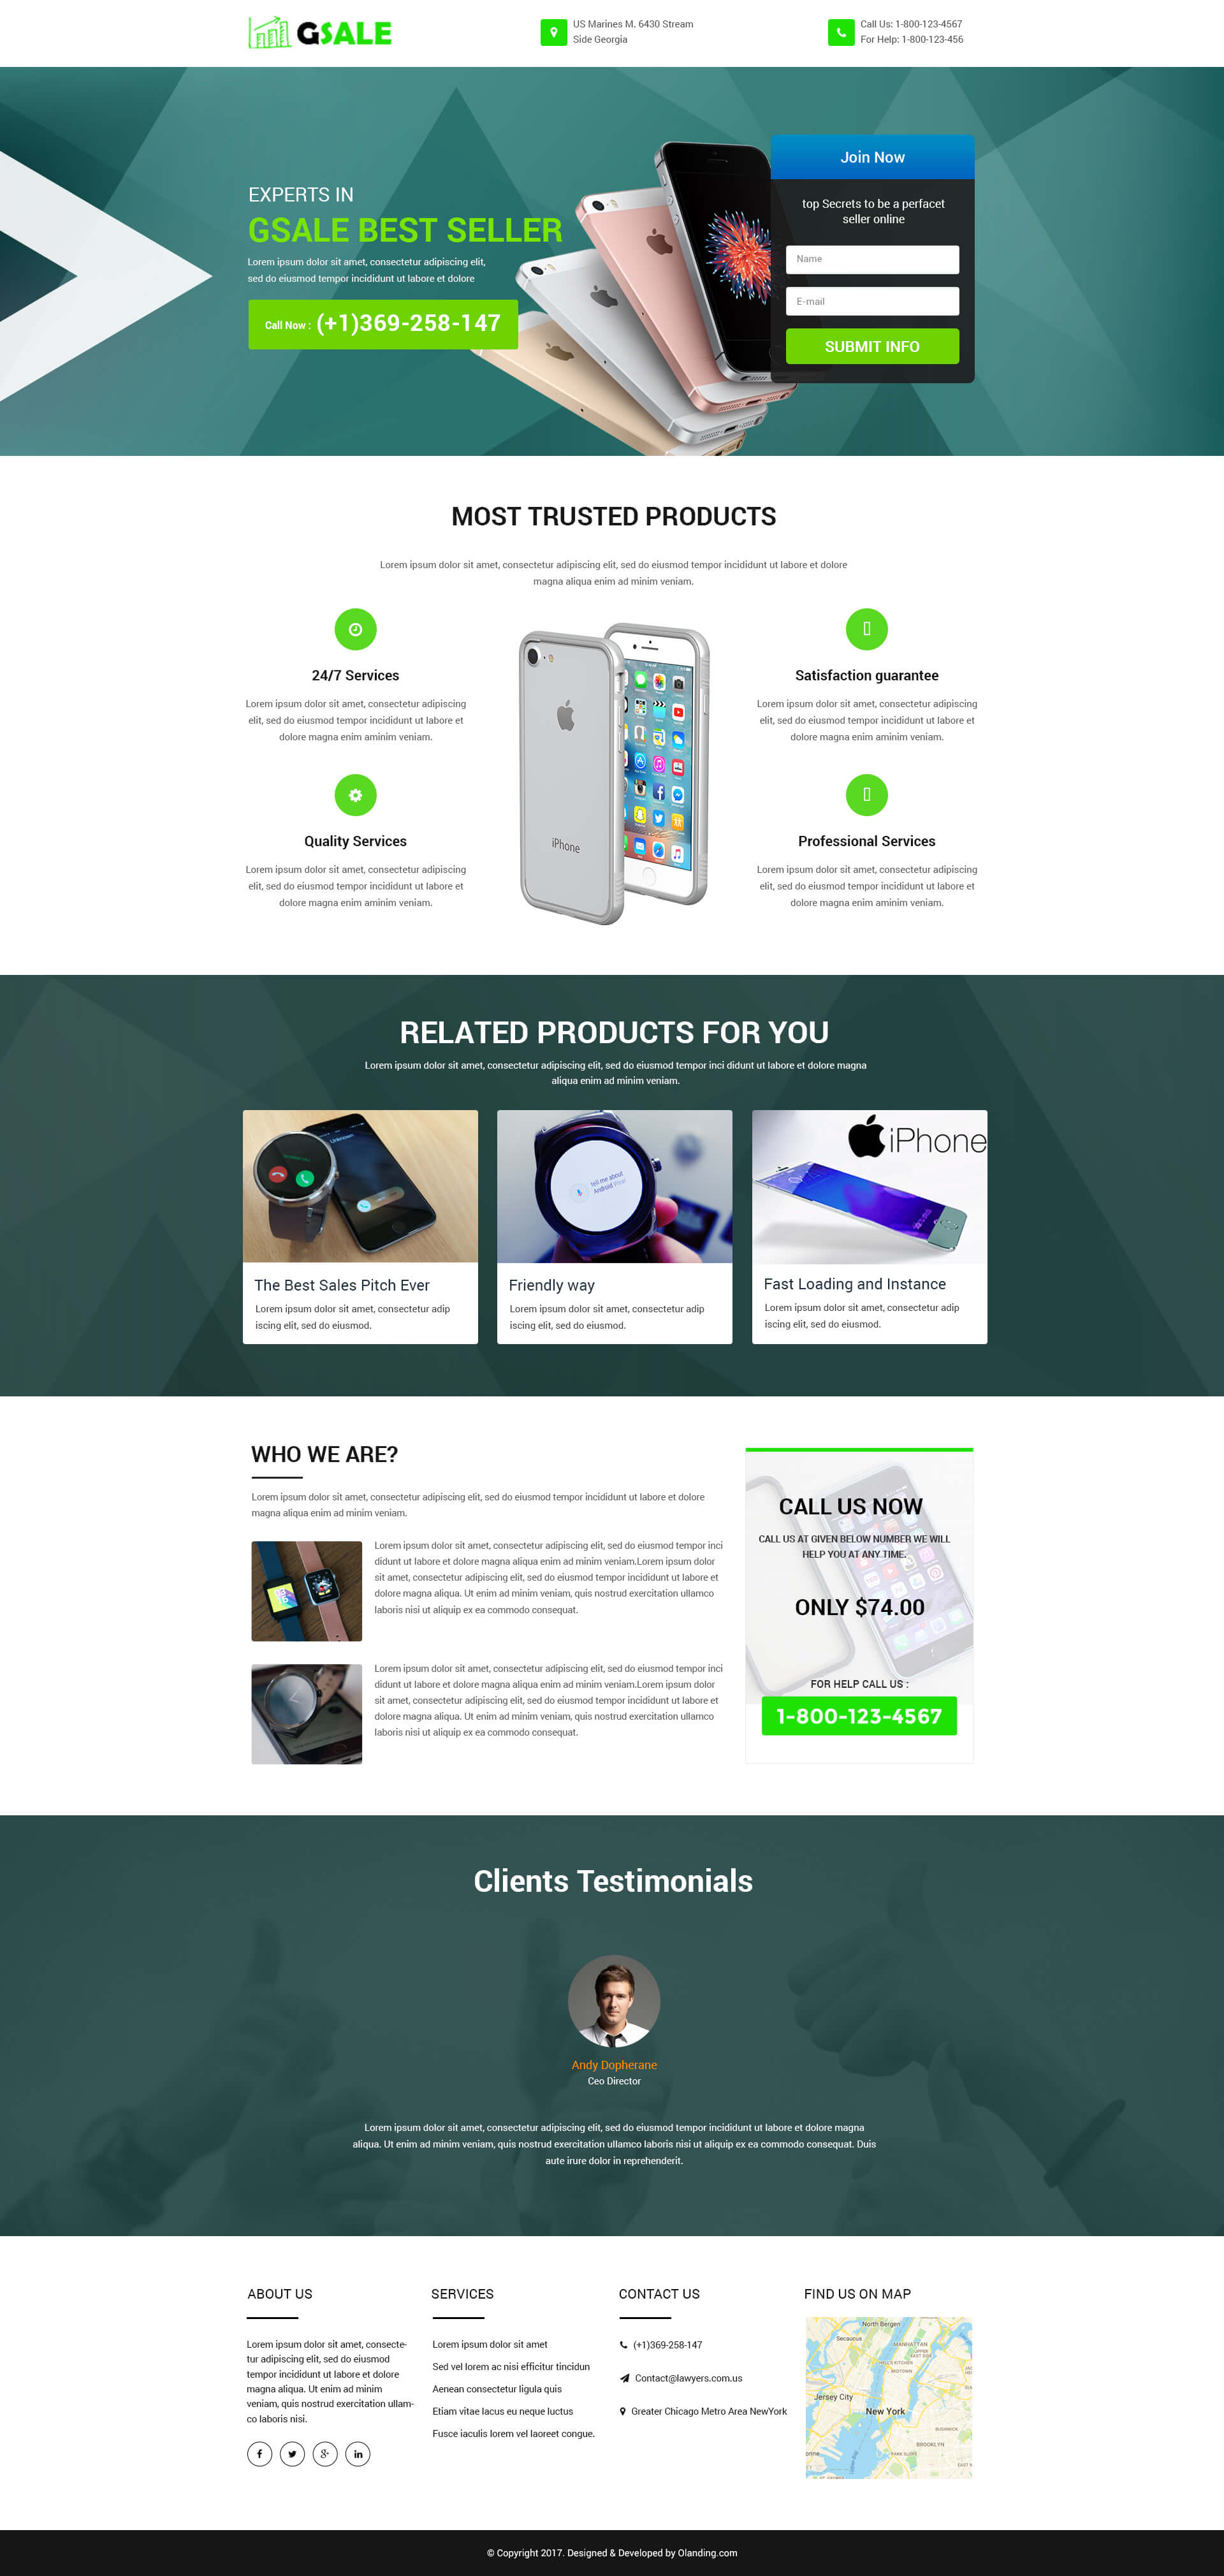 Sales Page Landing Page Design Templates For Your Online Internet - Sales landing page template